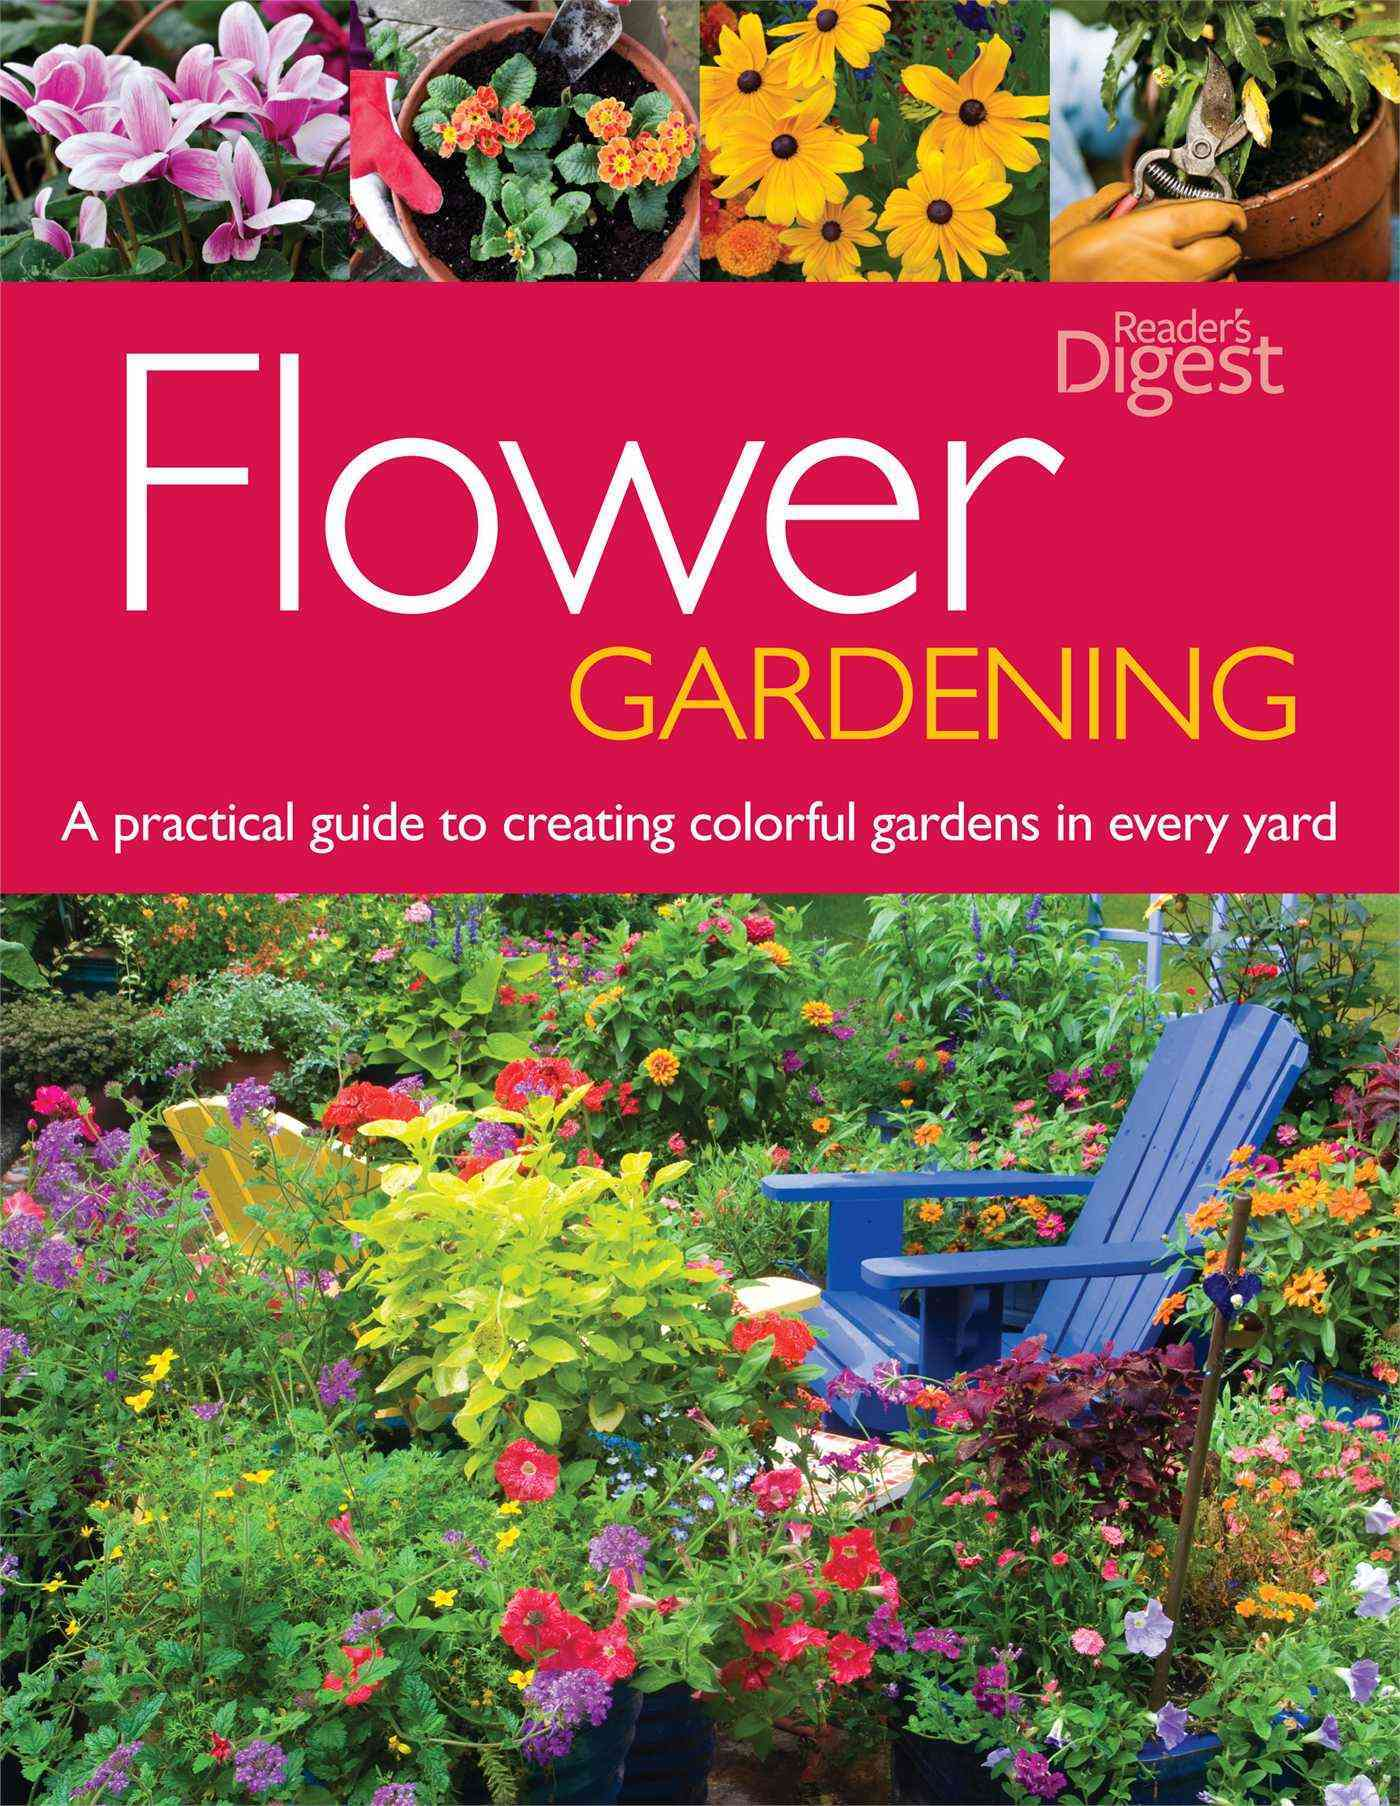 Flower Gardening: A Practical Guide to Creating Colorful Gardens in Every Yard (Paperback)